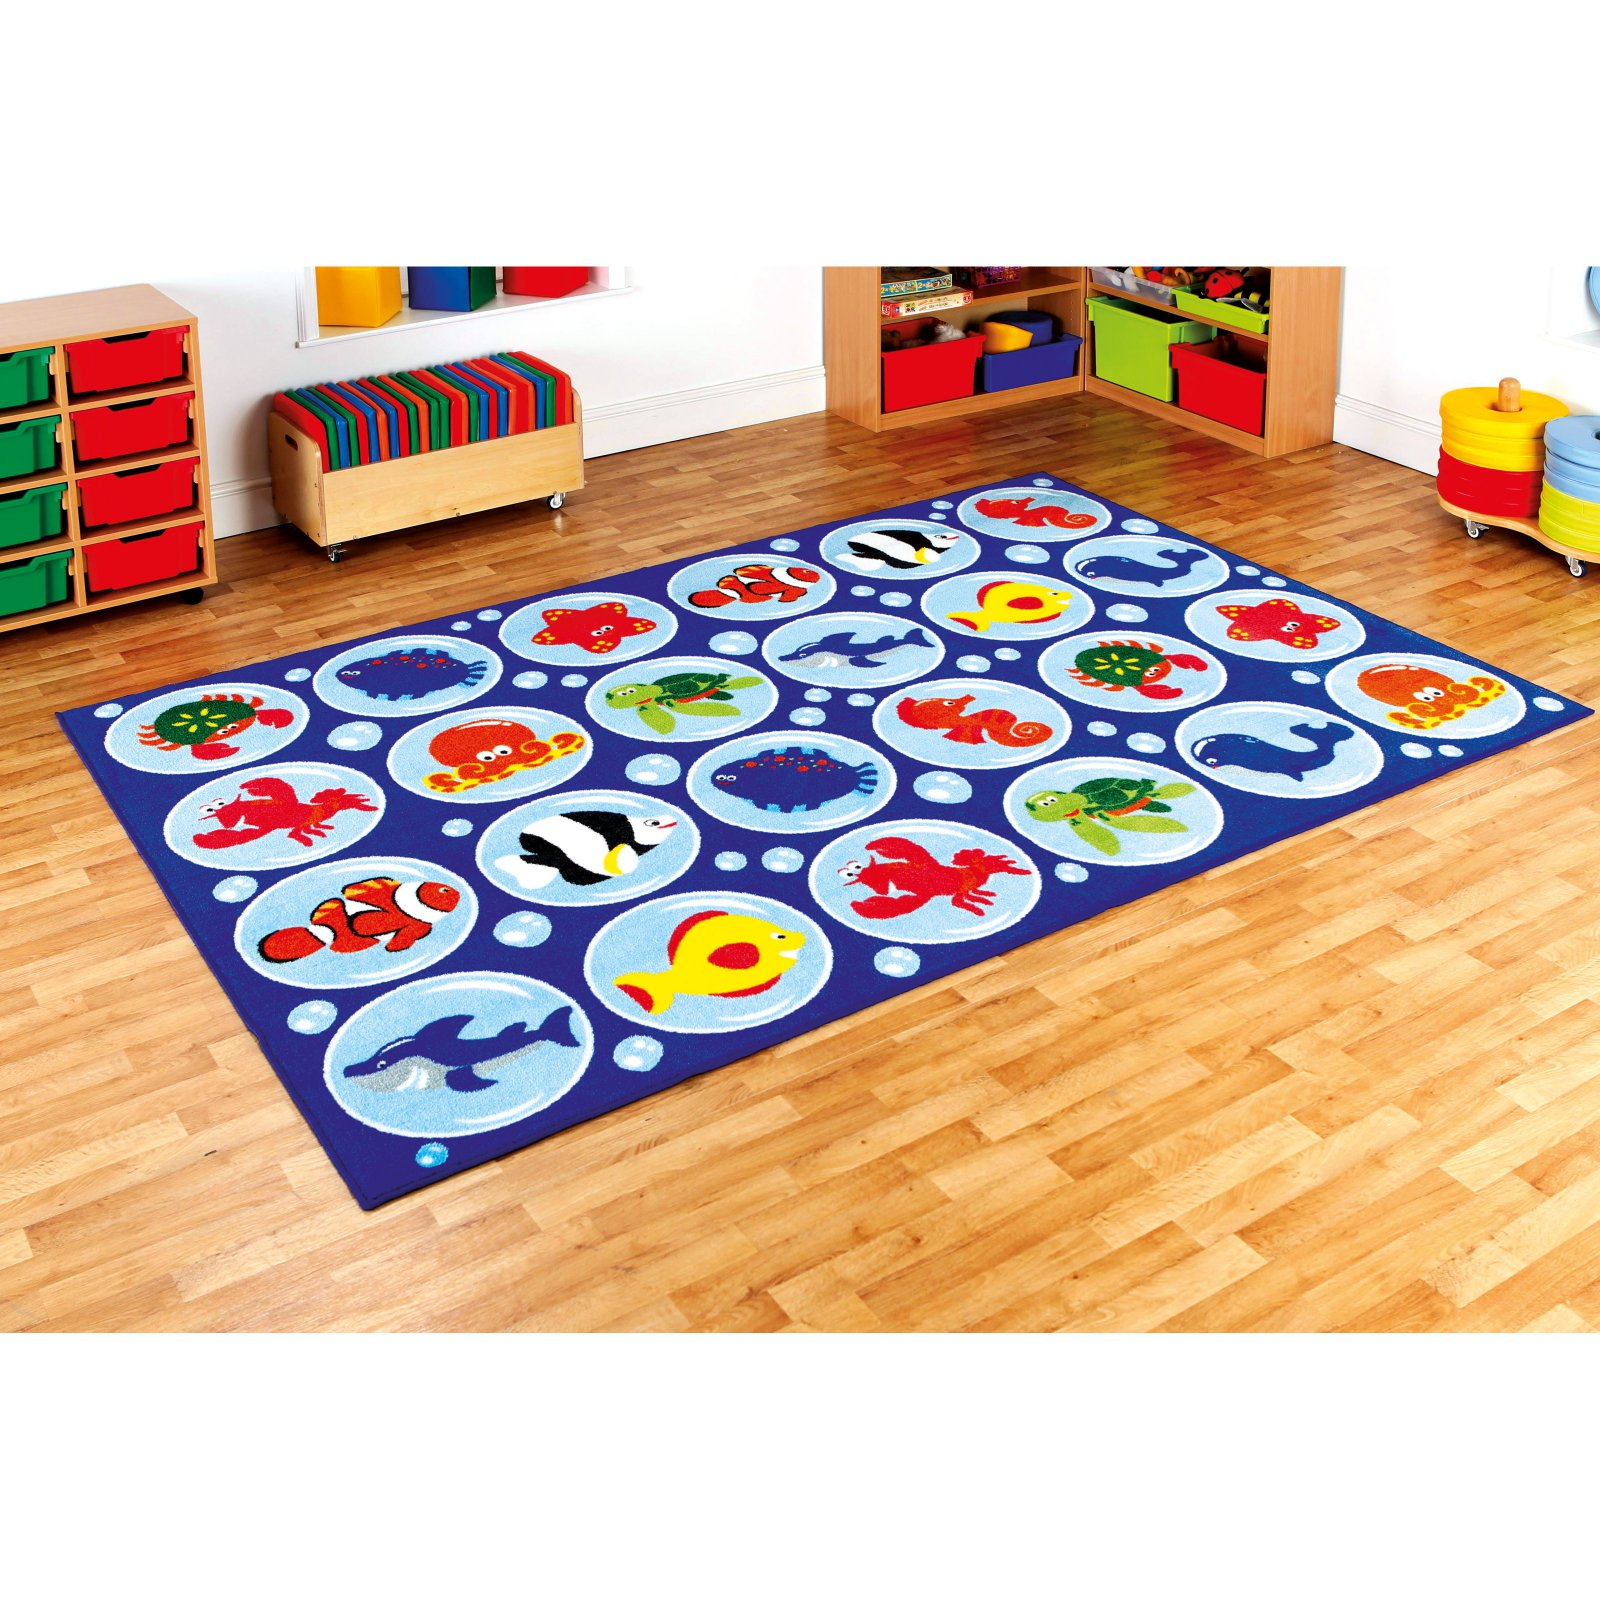 Kalokids Ocean Life Rectangular Placement Carpet